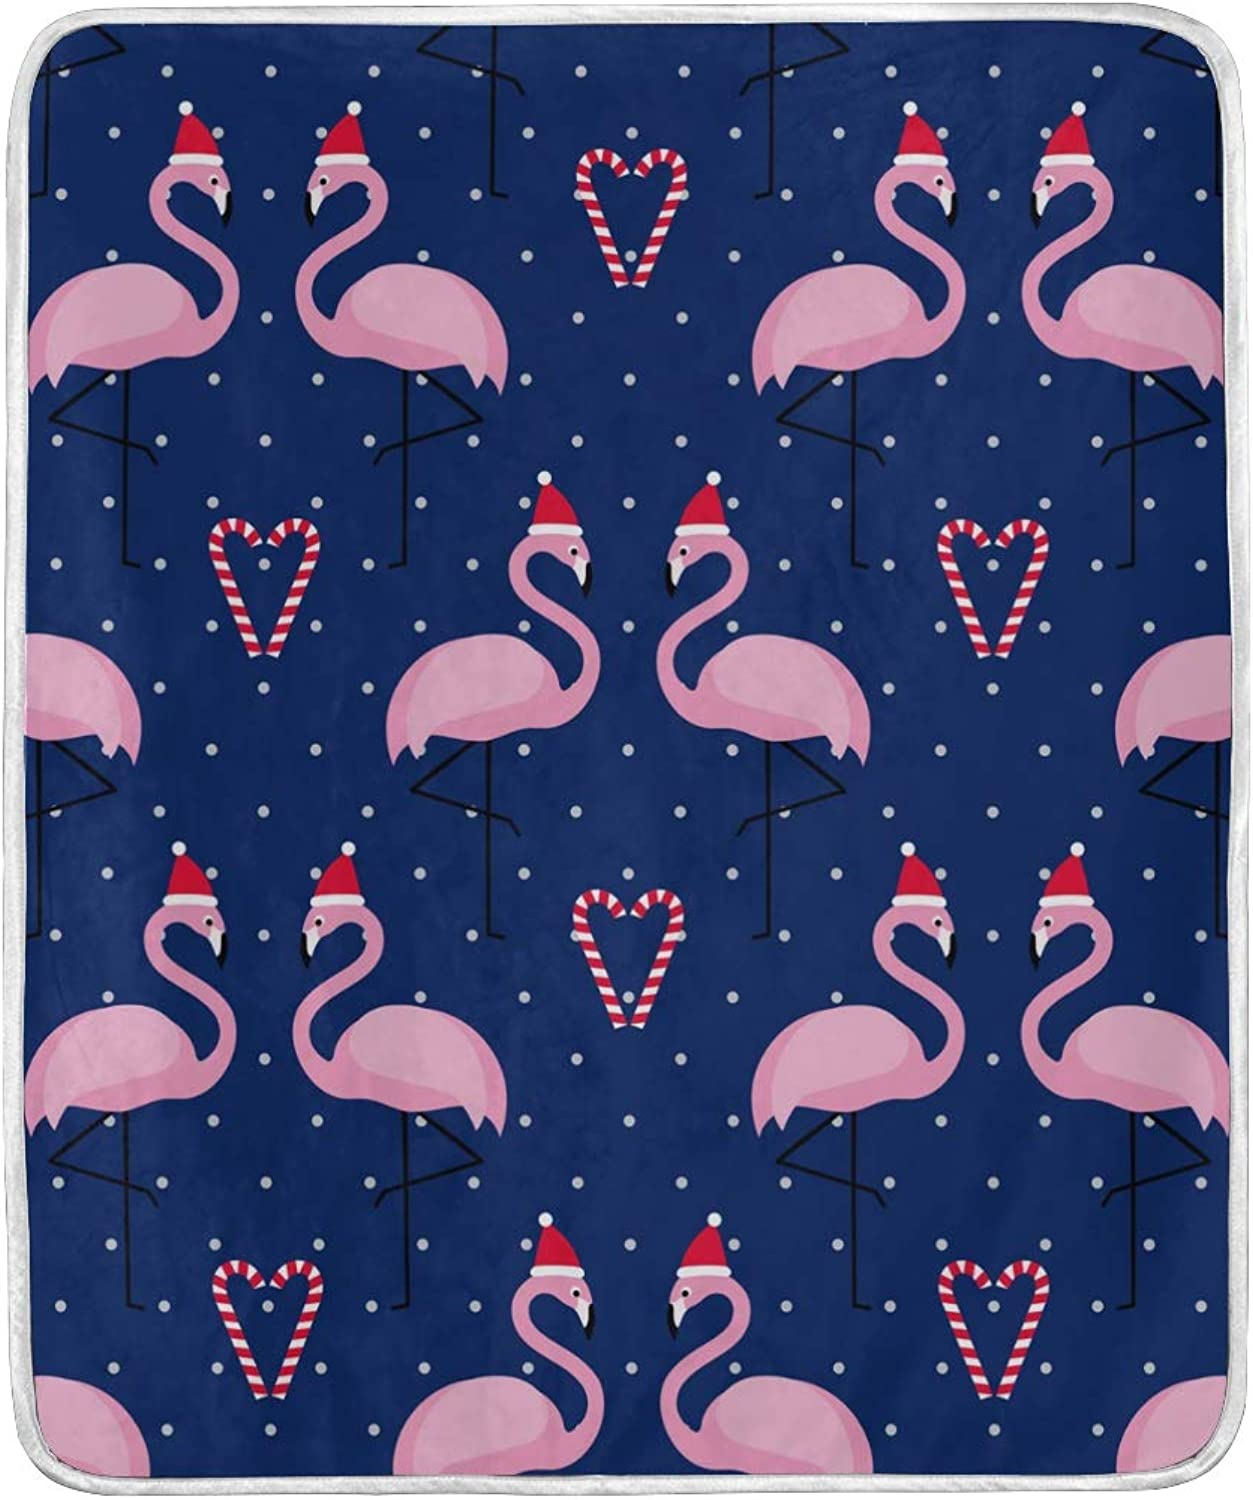 Vantaso Blankets Flamingo Xmas Hat Polka Dots Throws Soft Kids Girls Boys 50x60 inch